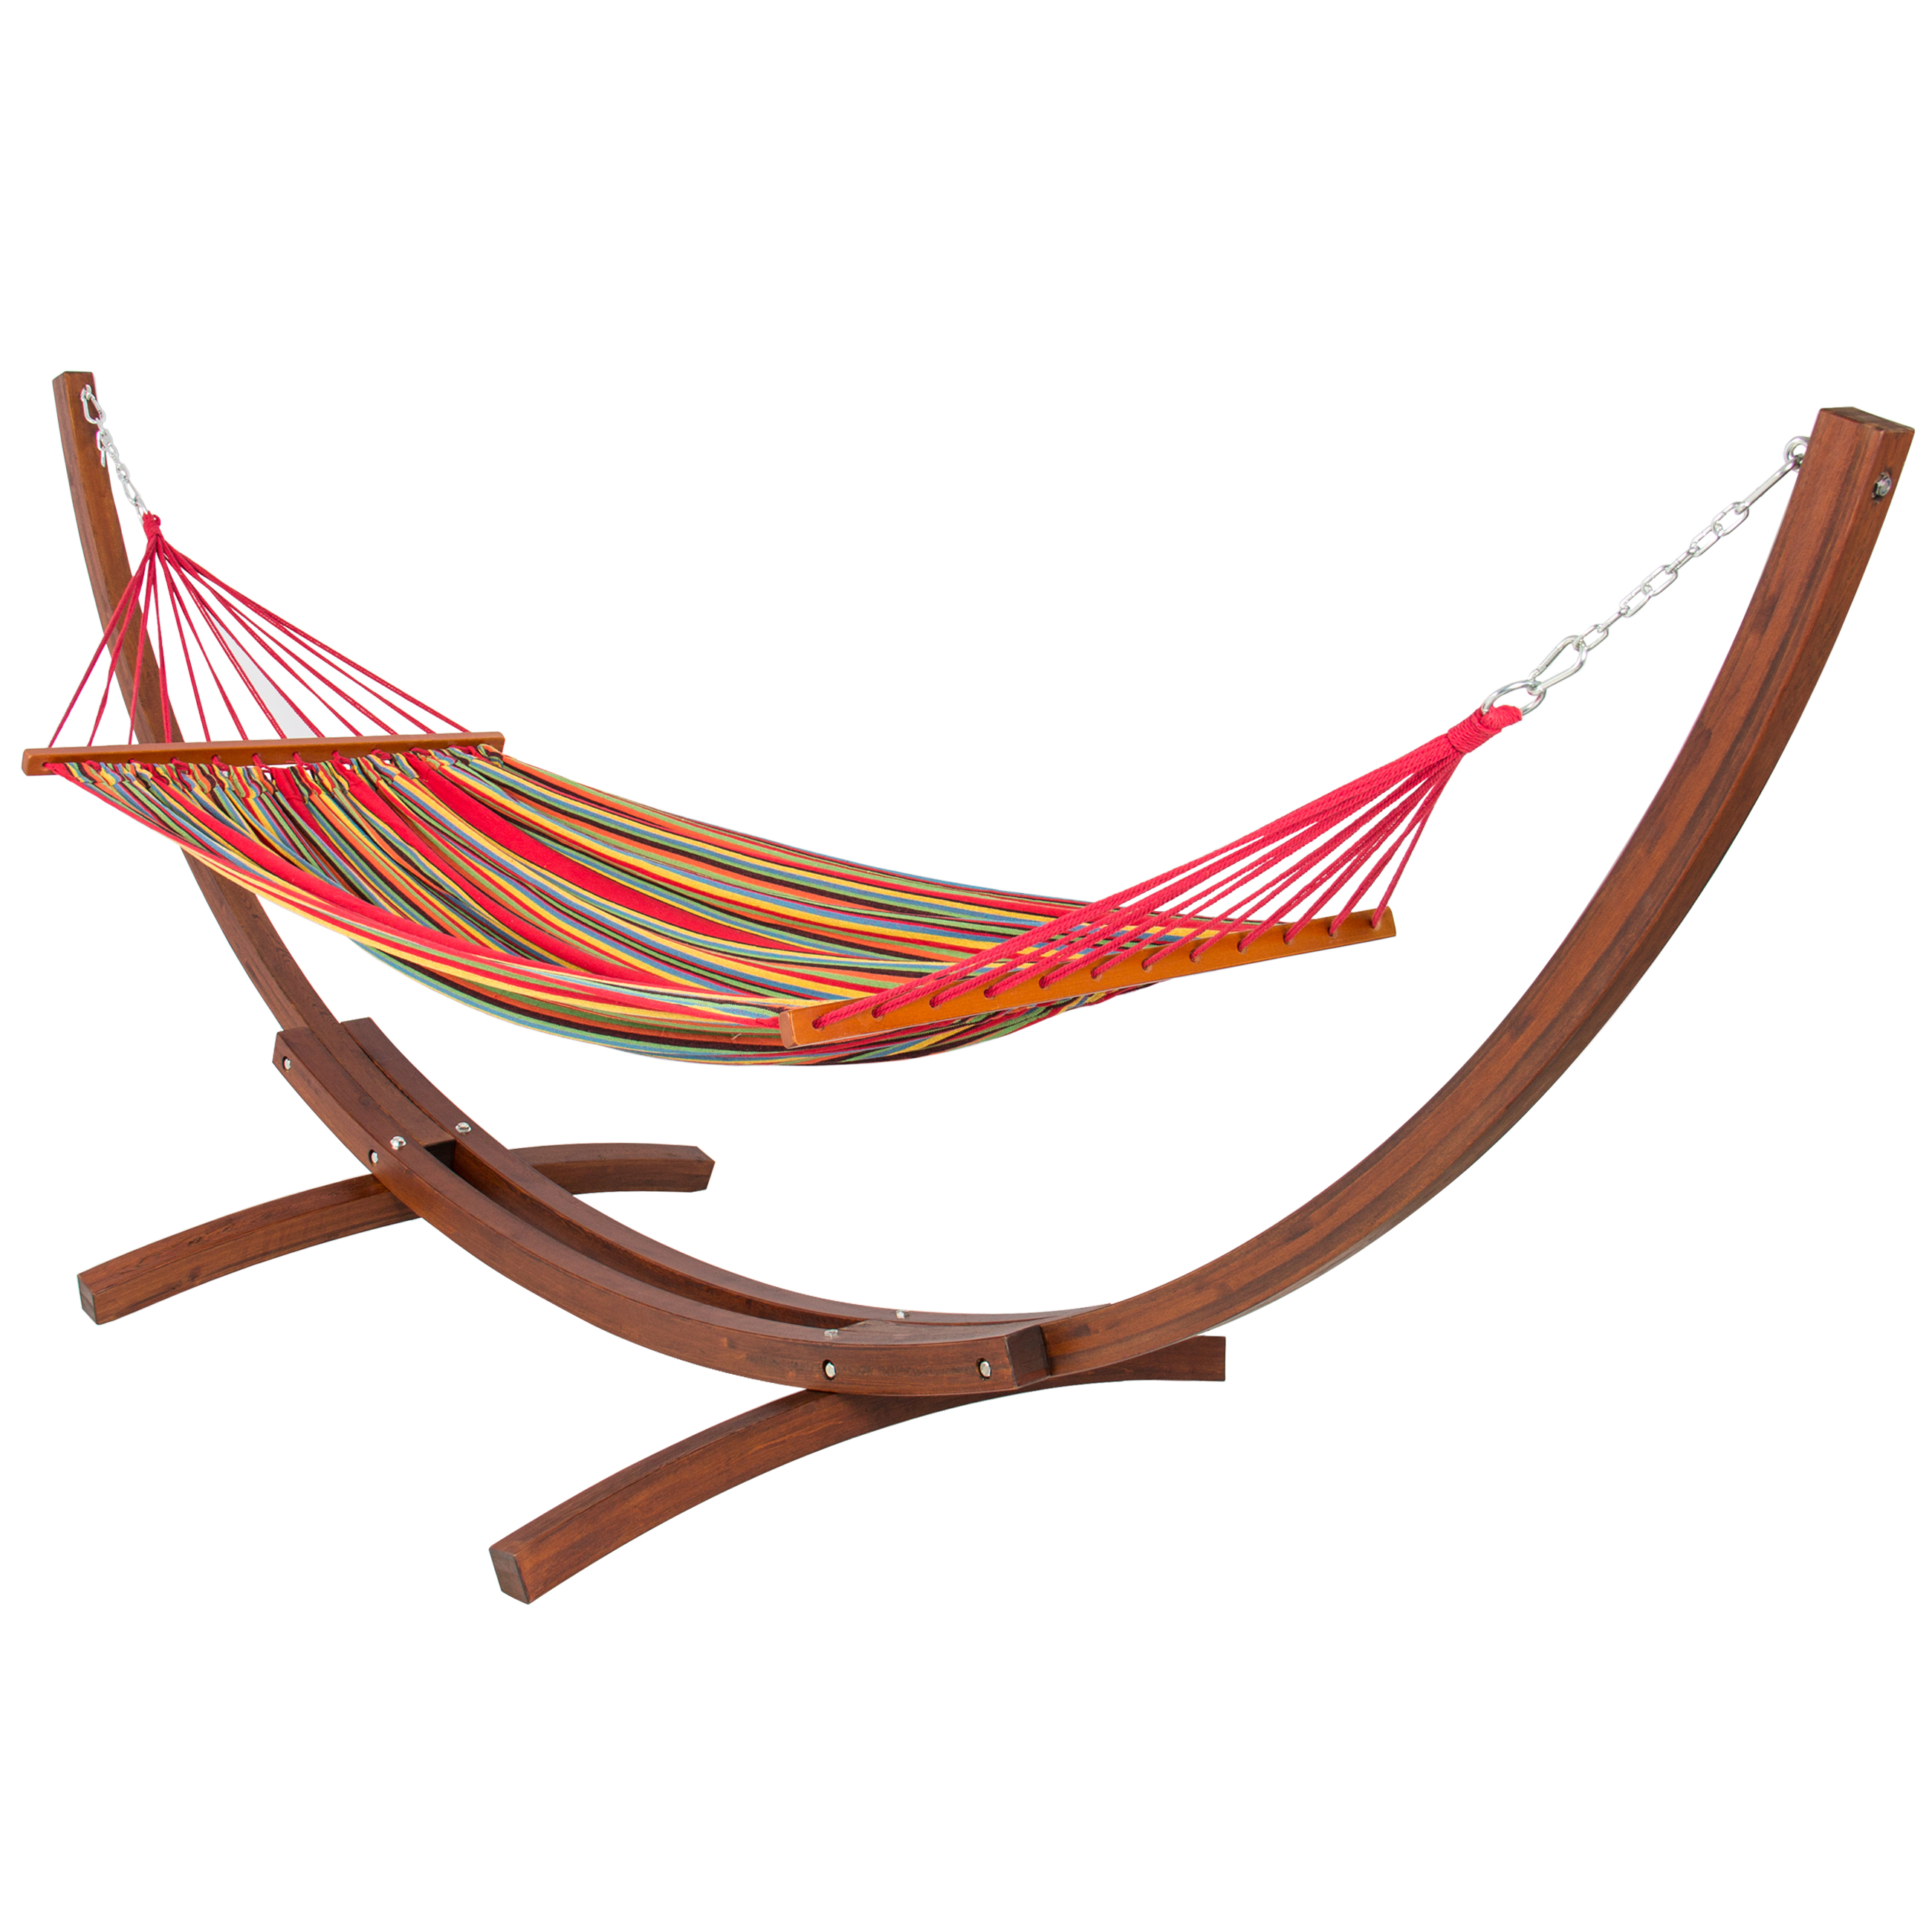 Best Choice Products Wood Curved Arc Hammock Stand w  Cotton Hammock for Outdoor, Garden,... by